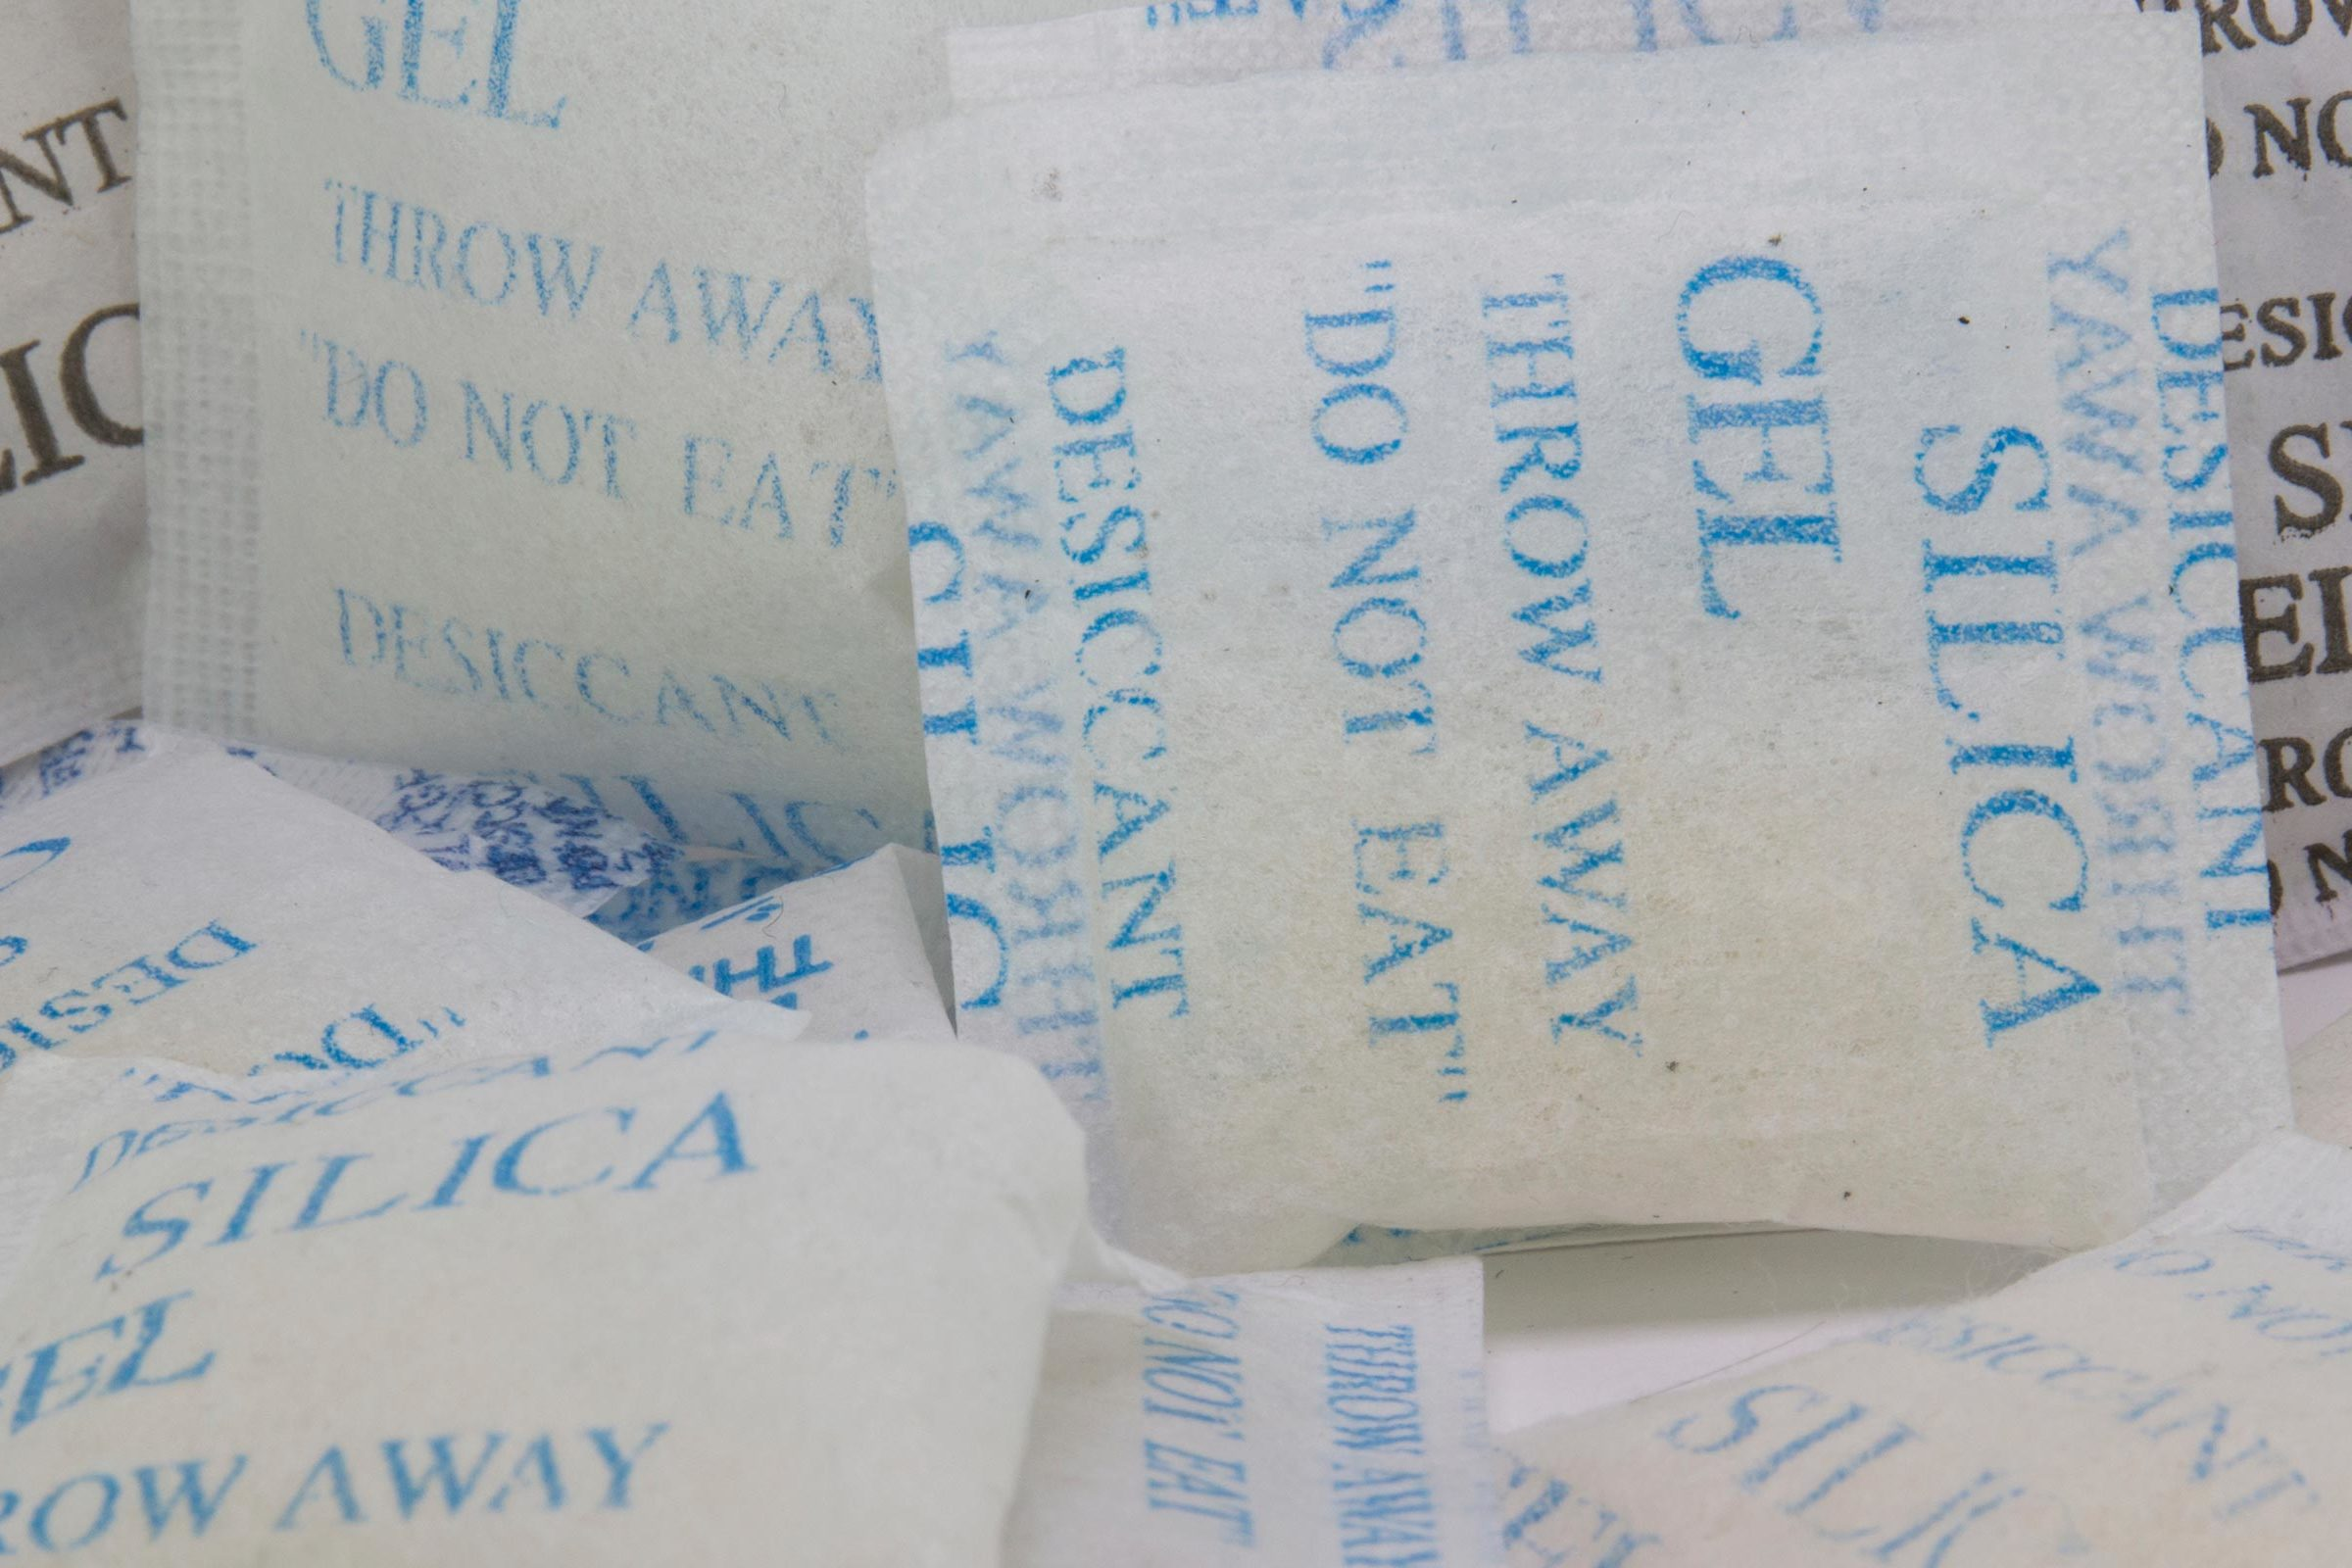 Packets of silica gel dessicant.